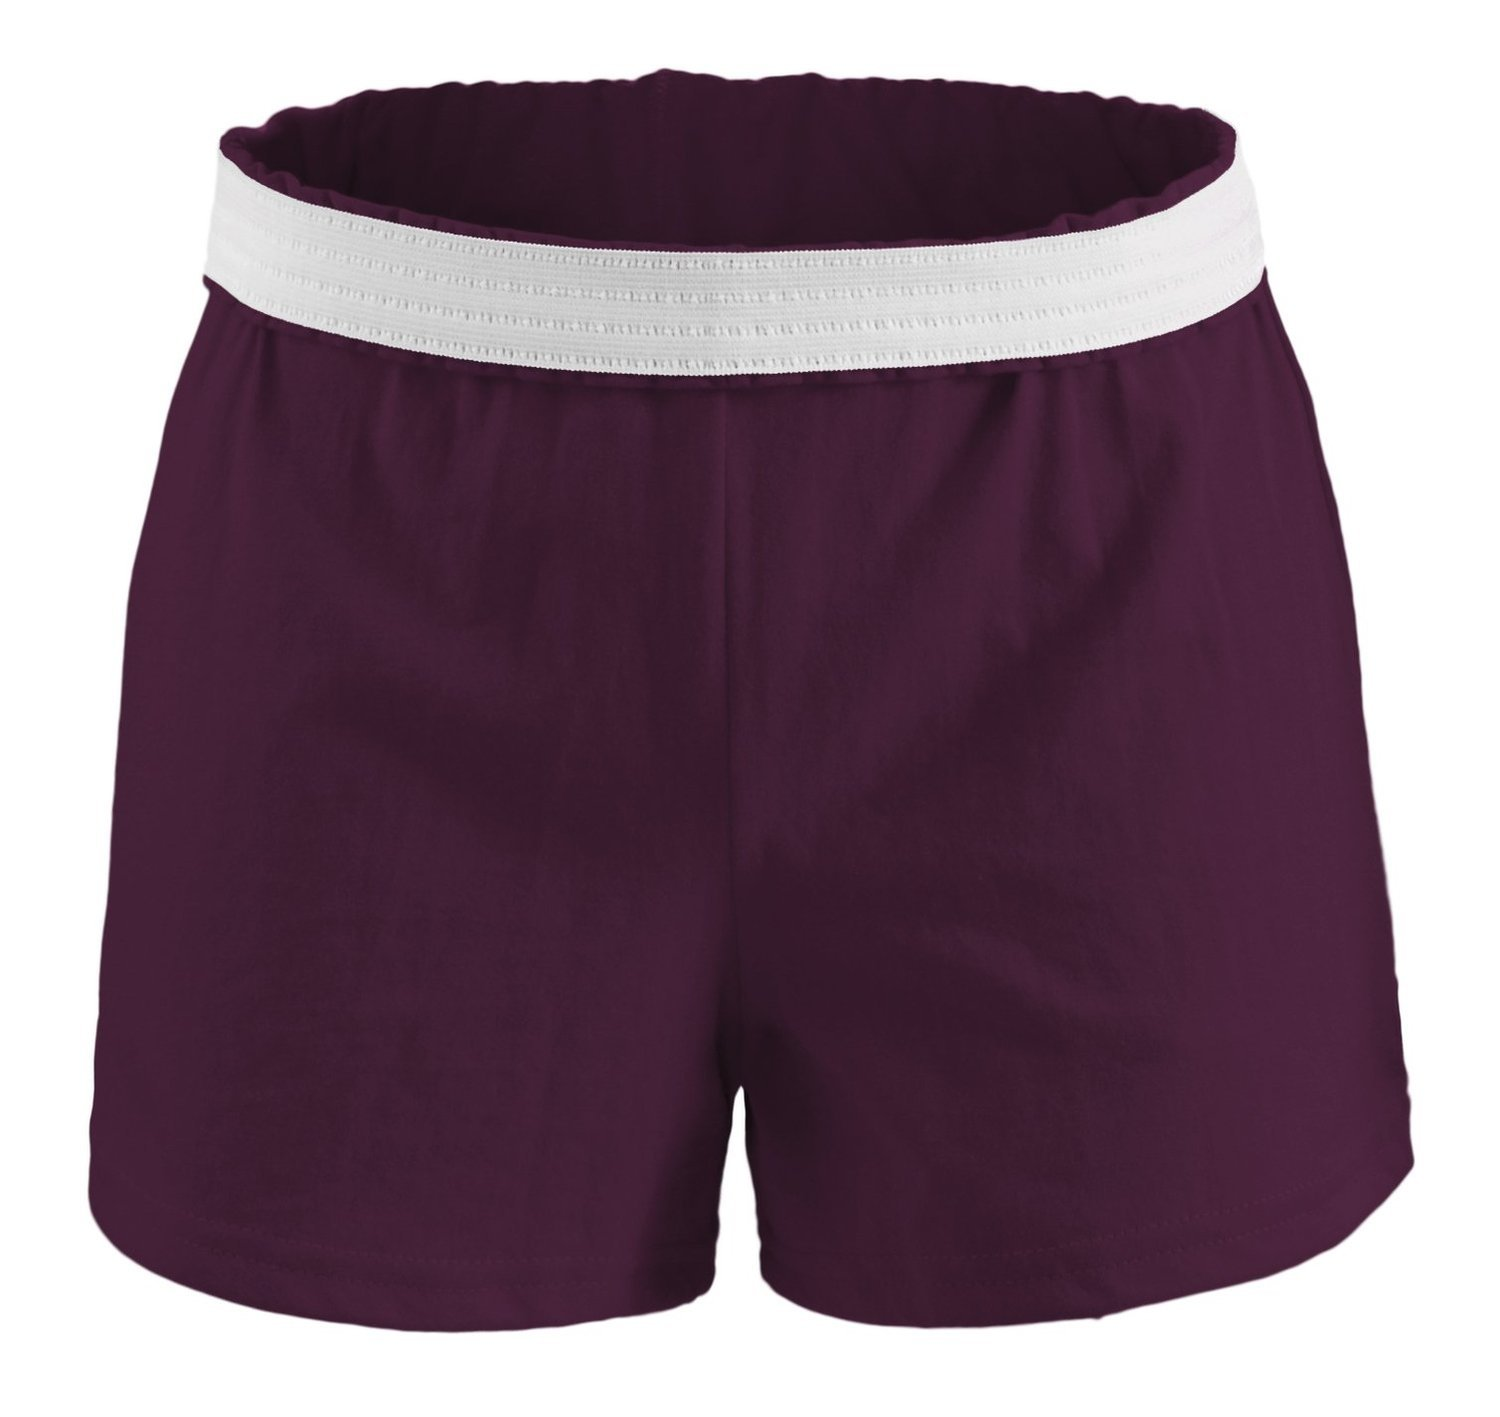 Soffe Athletic Cheer Short Eric McCrite Company B037620-XL-P